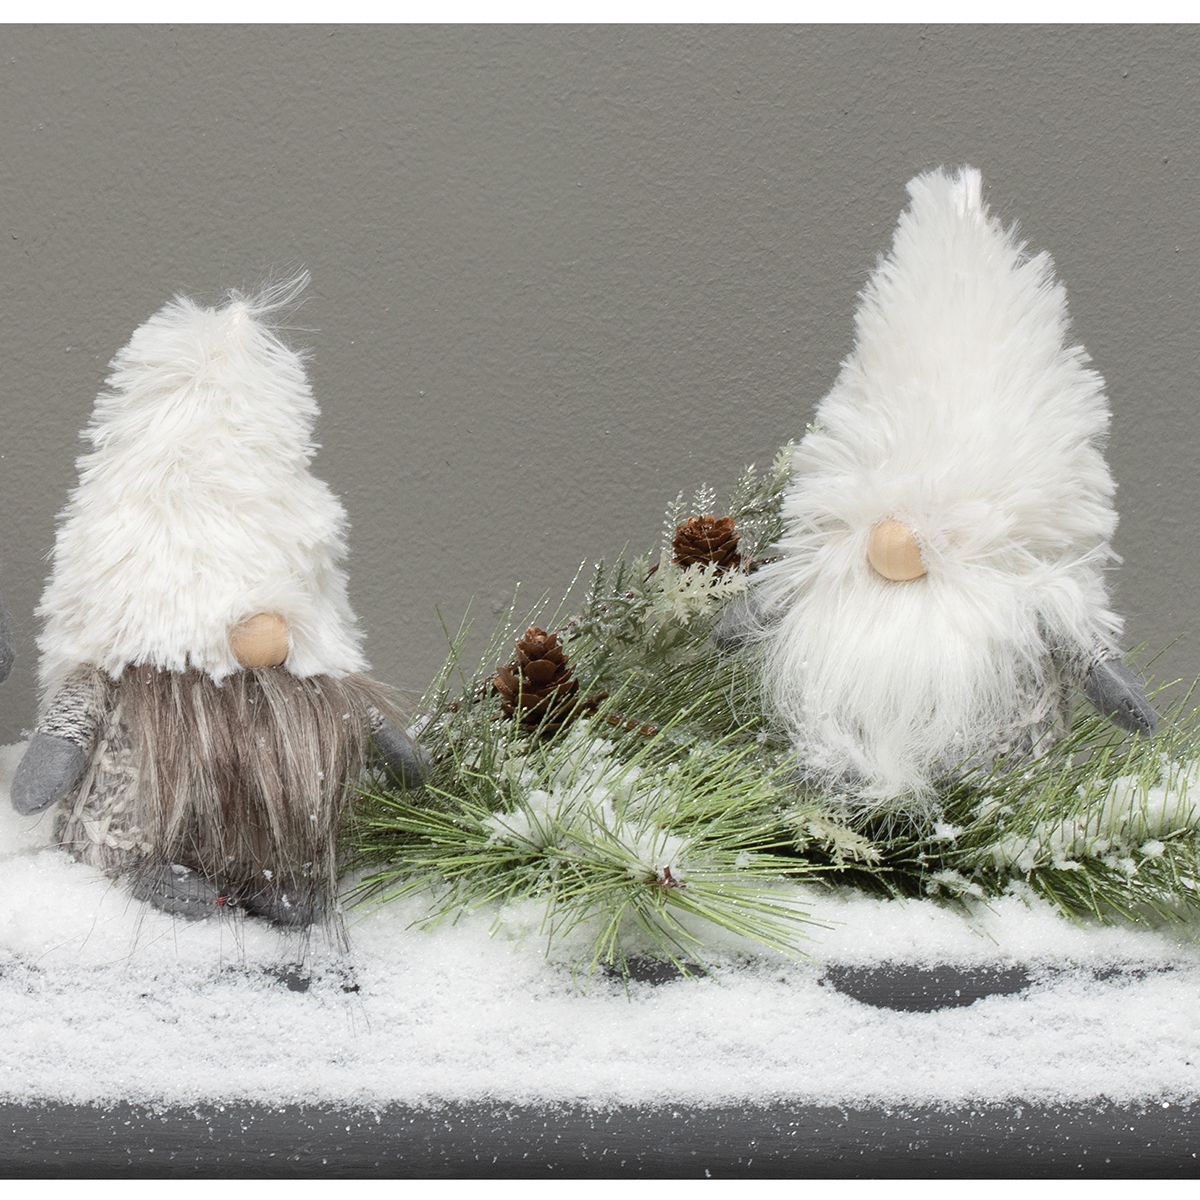 MINI GNOME WITH JINGLE BELL, WHITE FURRY